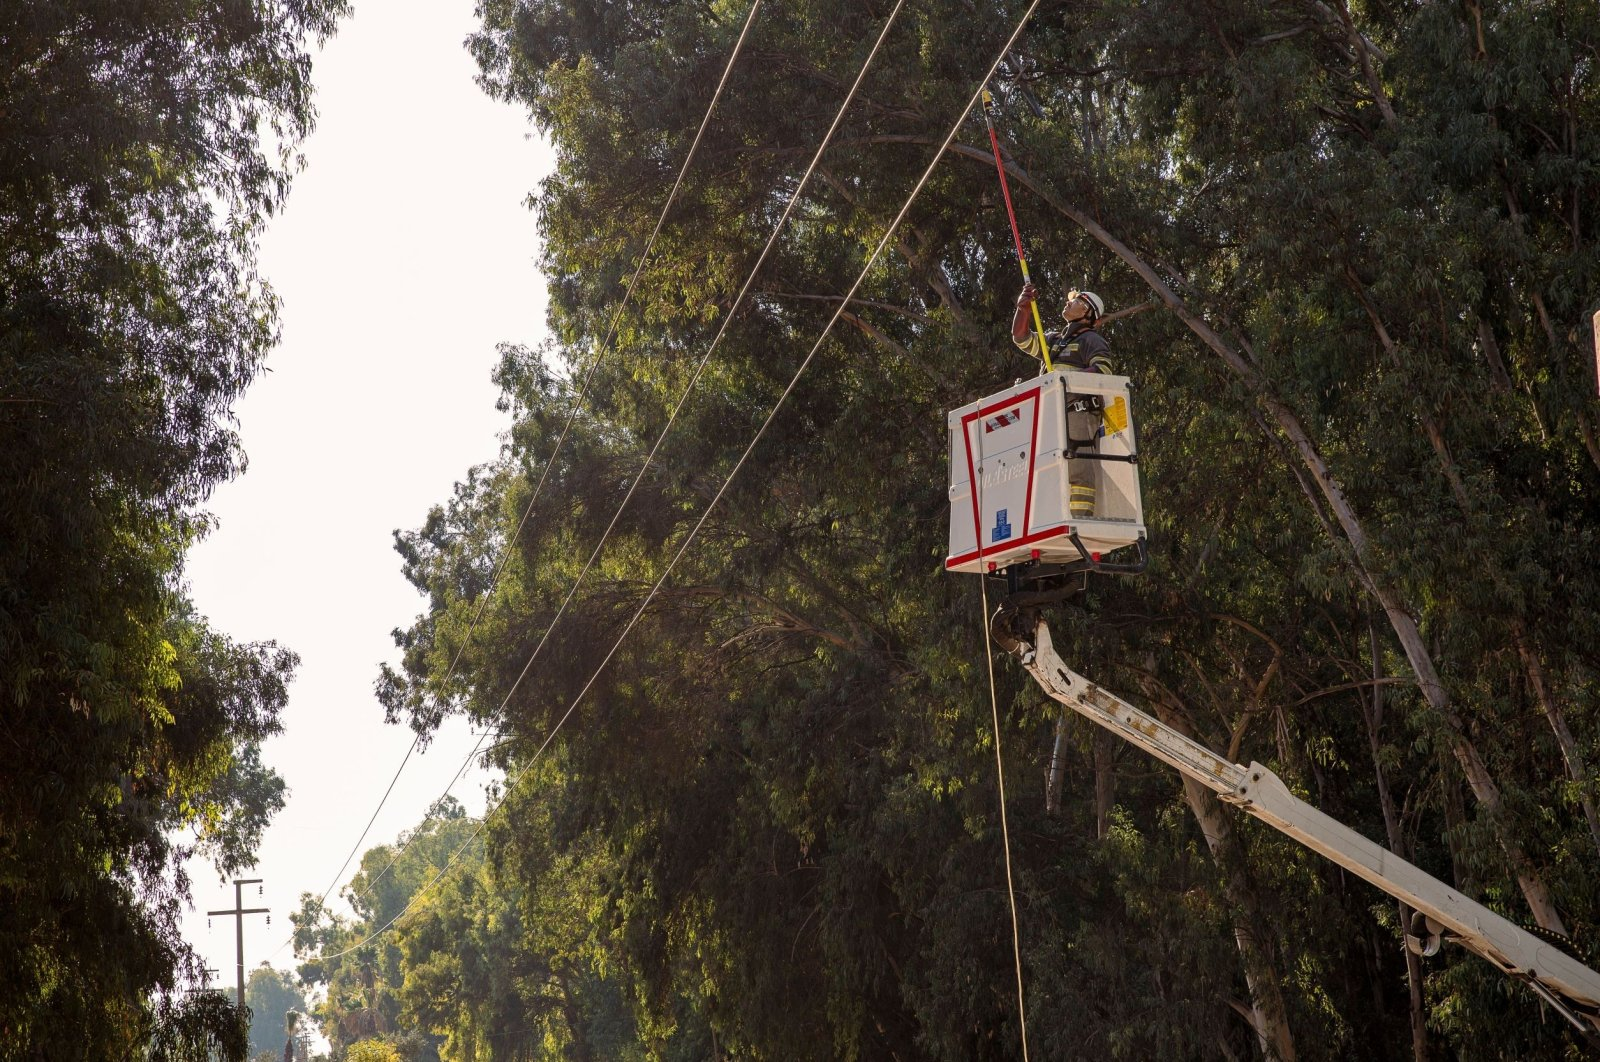 A worker does maintenance work on a power line, in Mersin, southern Turkey, Aug. 2, 2021. (İHA PHOTO)